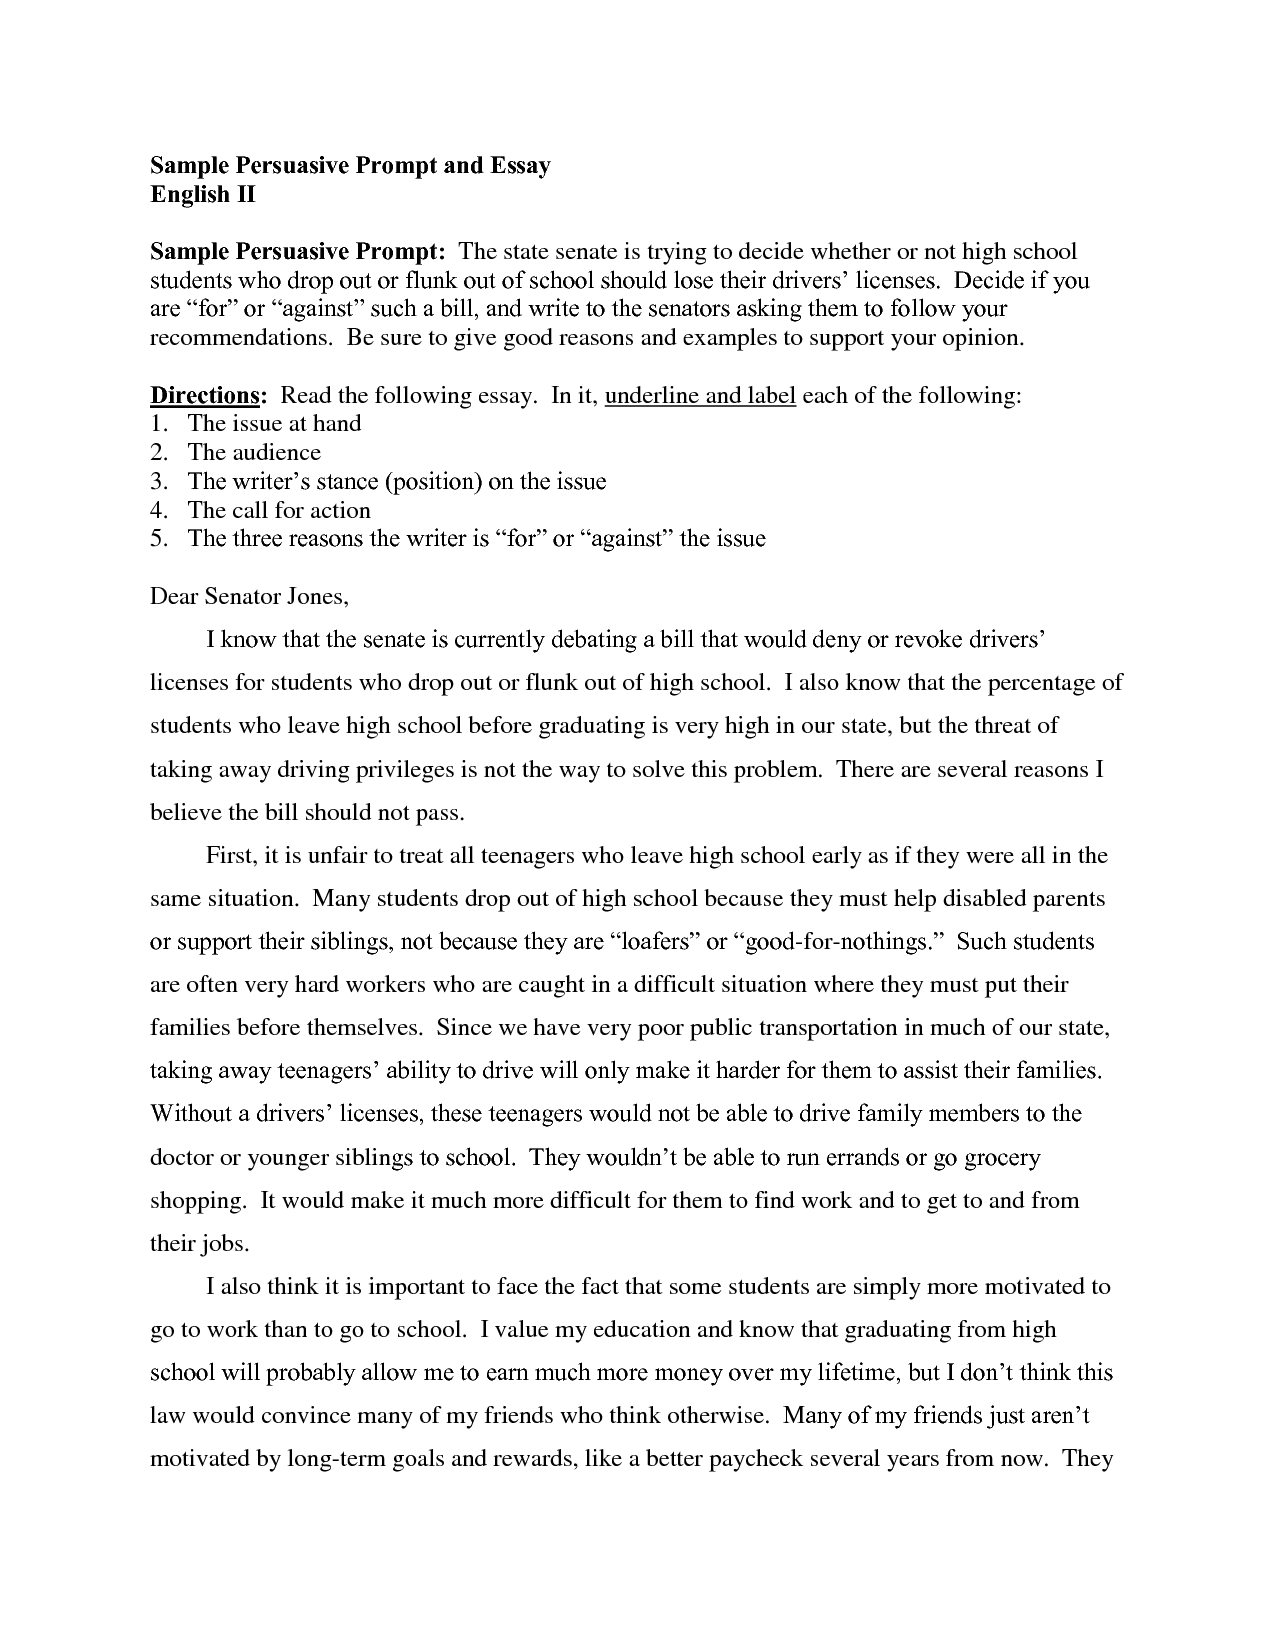 014 Persuasive Essays For High School Sample Ideas Highschool Students Good Prompt Funny Easy Fun List Of Seniors Writing English Free Research Paper Argumentative Fantastic Topic Full